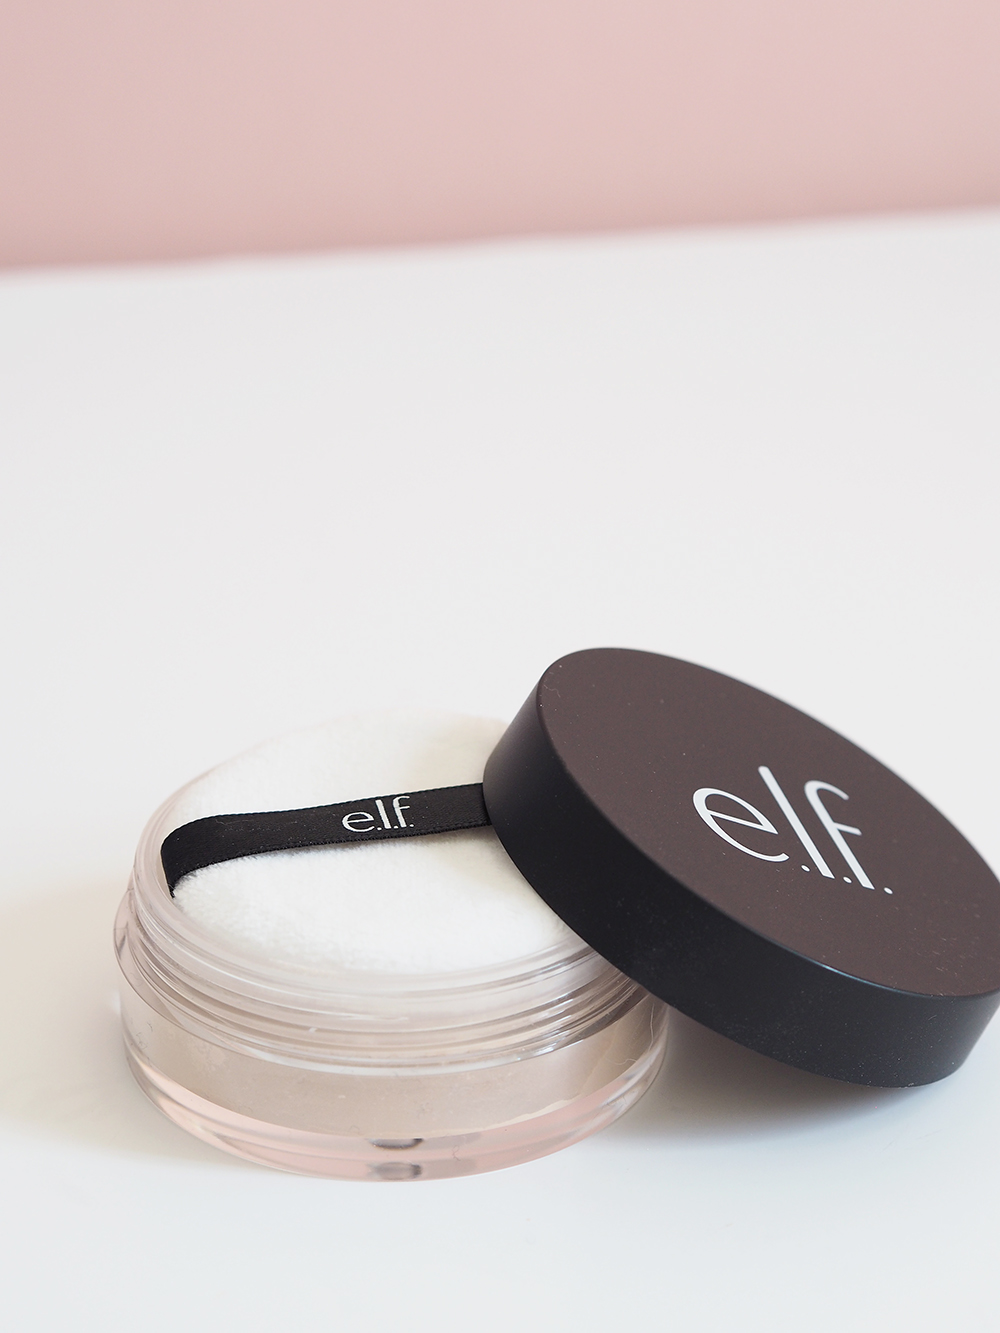 ELF cosmetics makeup